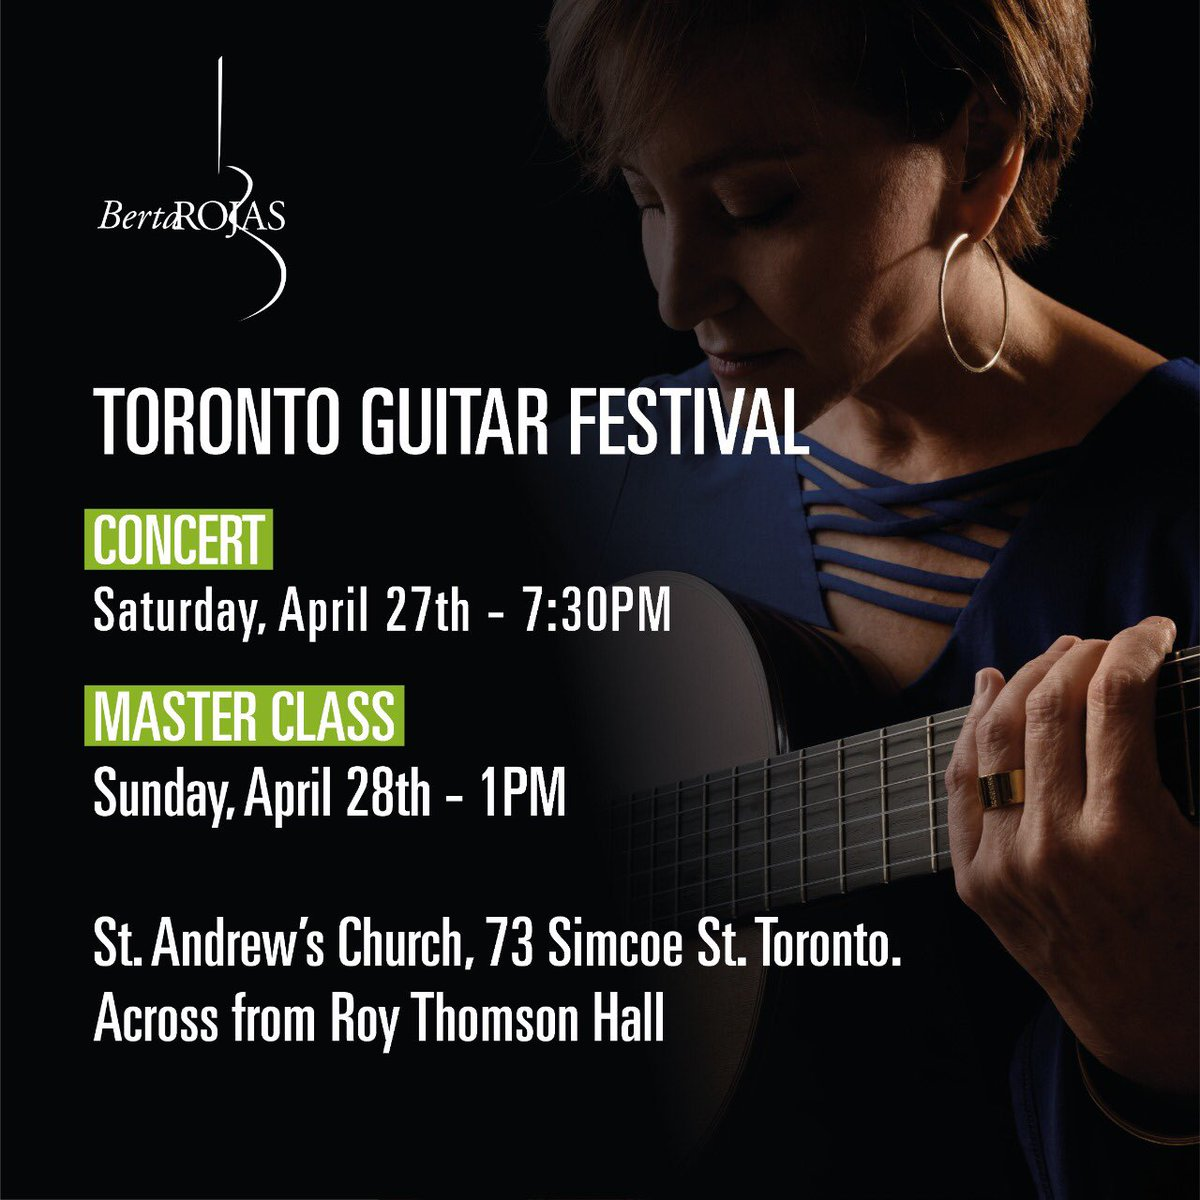 A lot happened since the last time I was at the Toronto Guitar Weekend in 2015! Looking forward to see you all there!  #ClassicalGuitar #Guitarist #TorontoGuitarWeekend #Canada #Paraguay